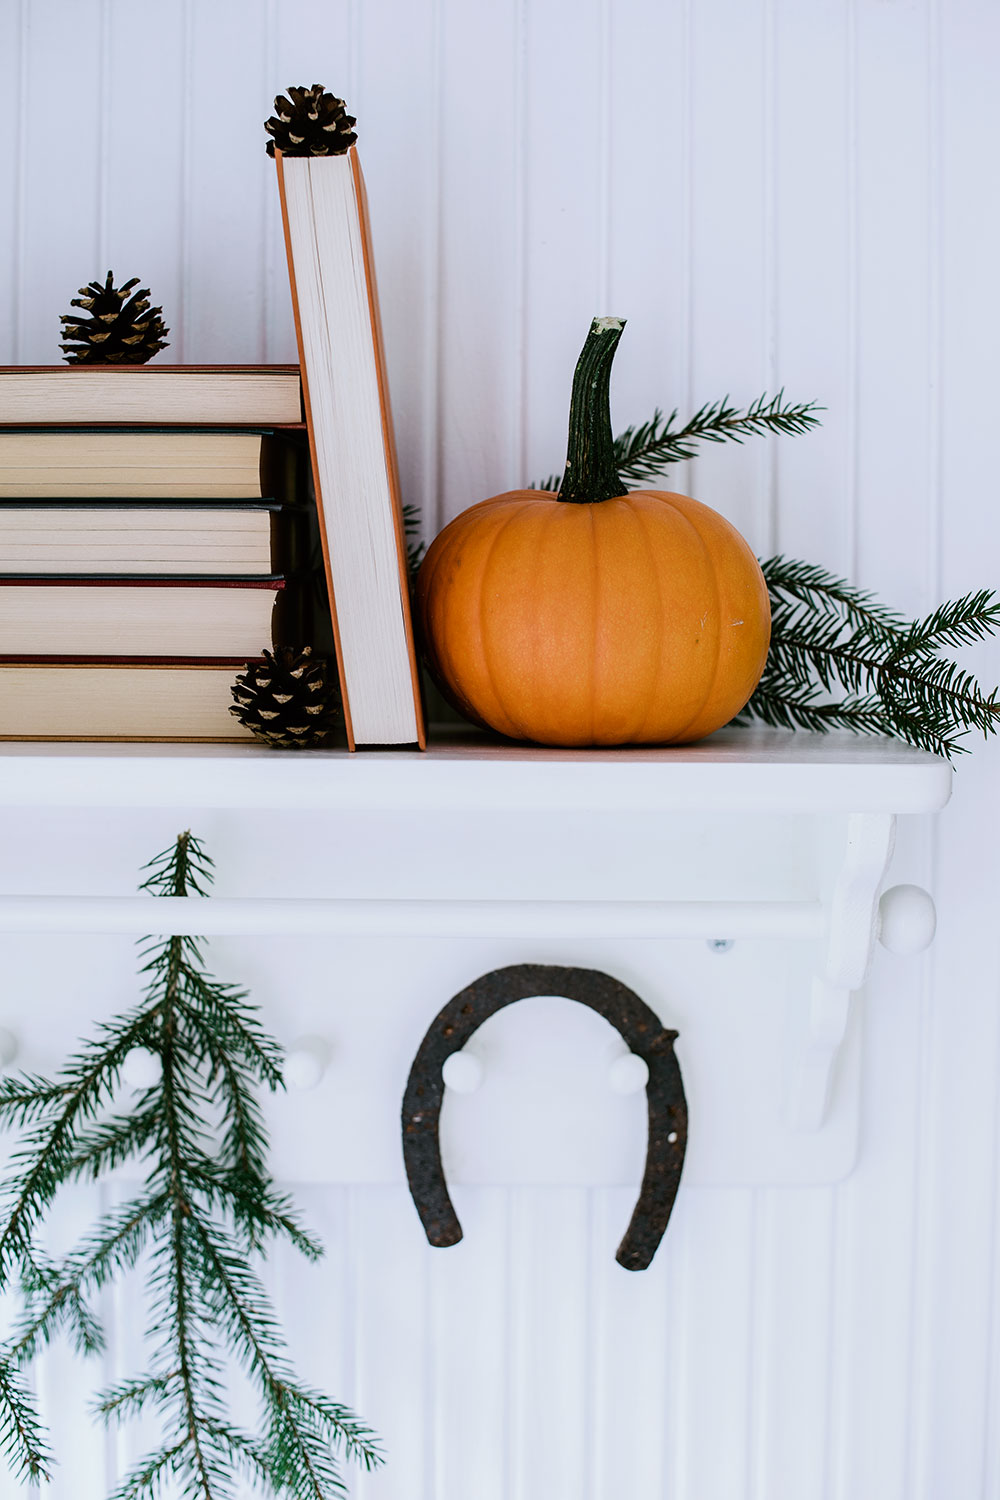 Pumpkins and books in the entry